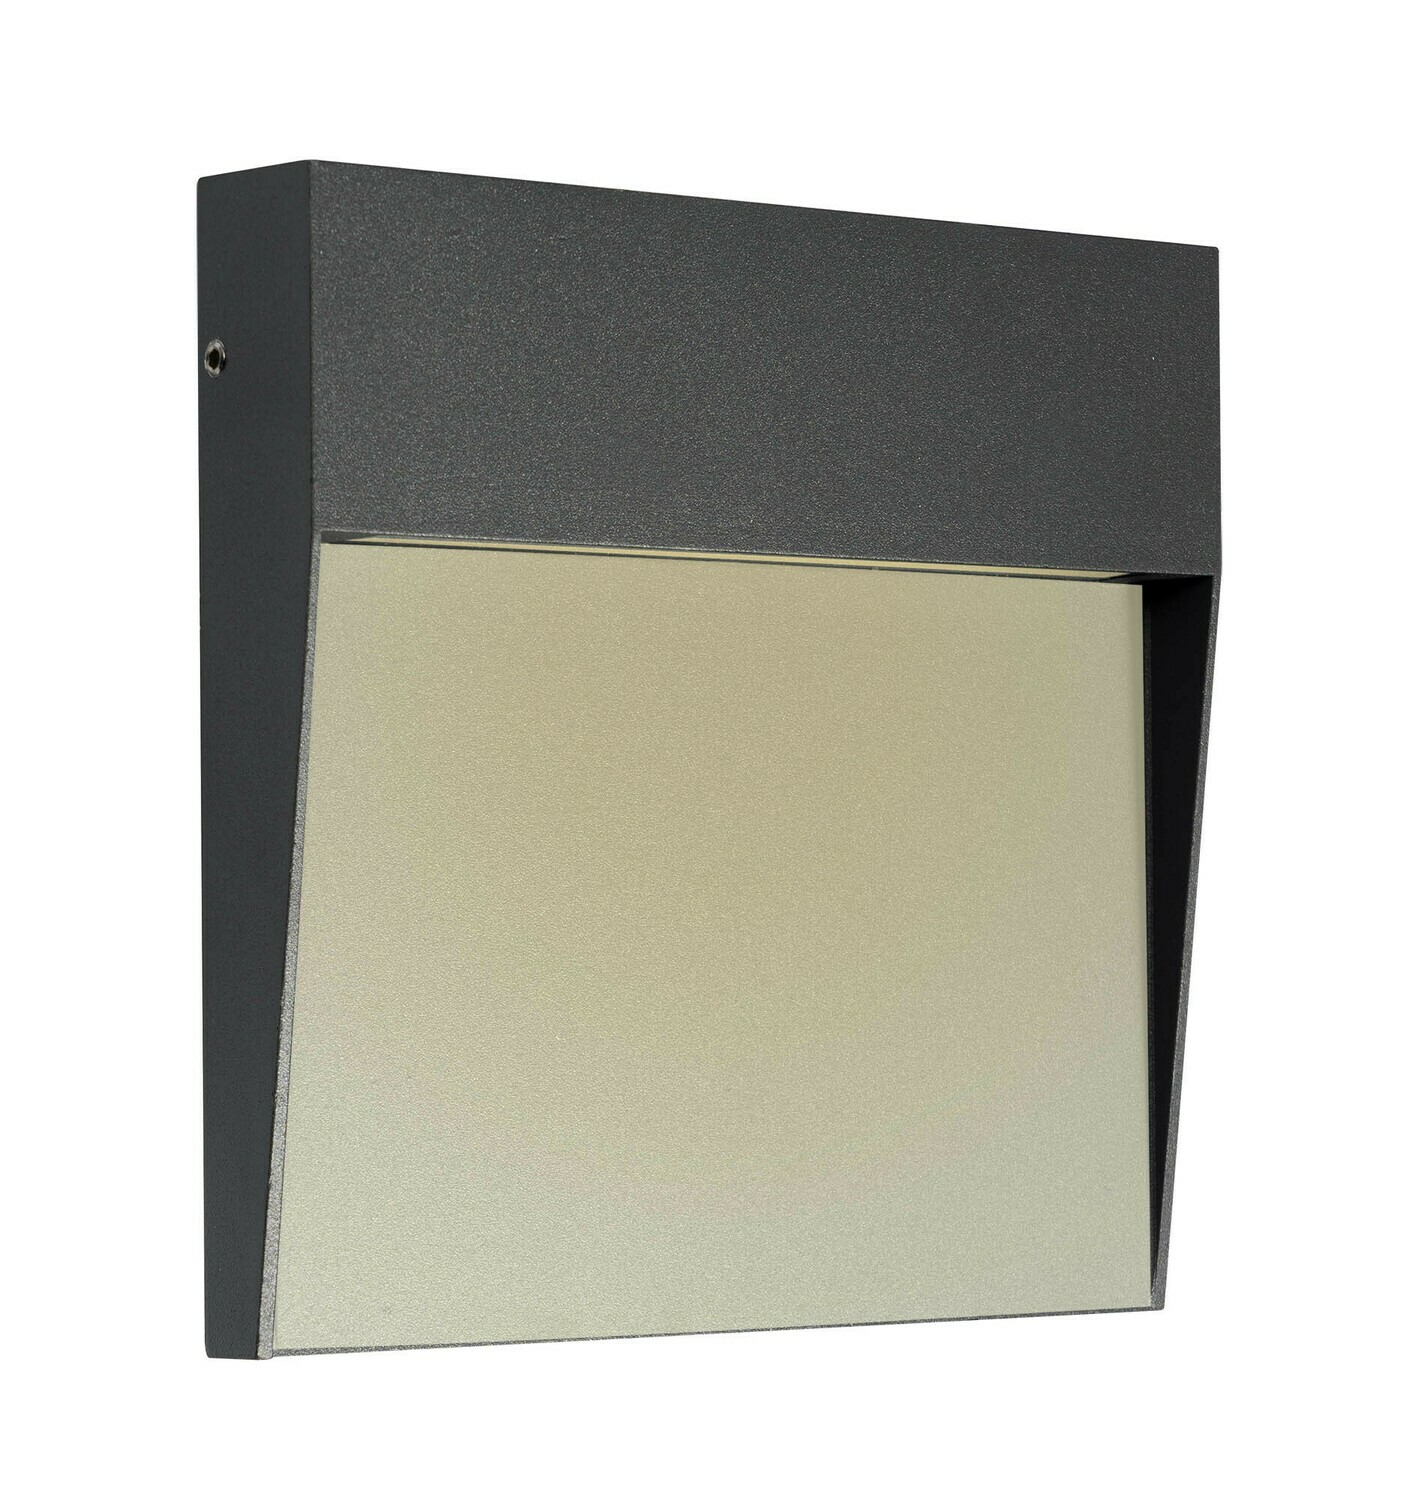 Baker Wall Lamp Large Square, 6W LED, 3000K, 266lm, IP54, Anthracite